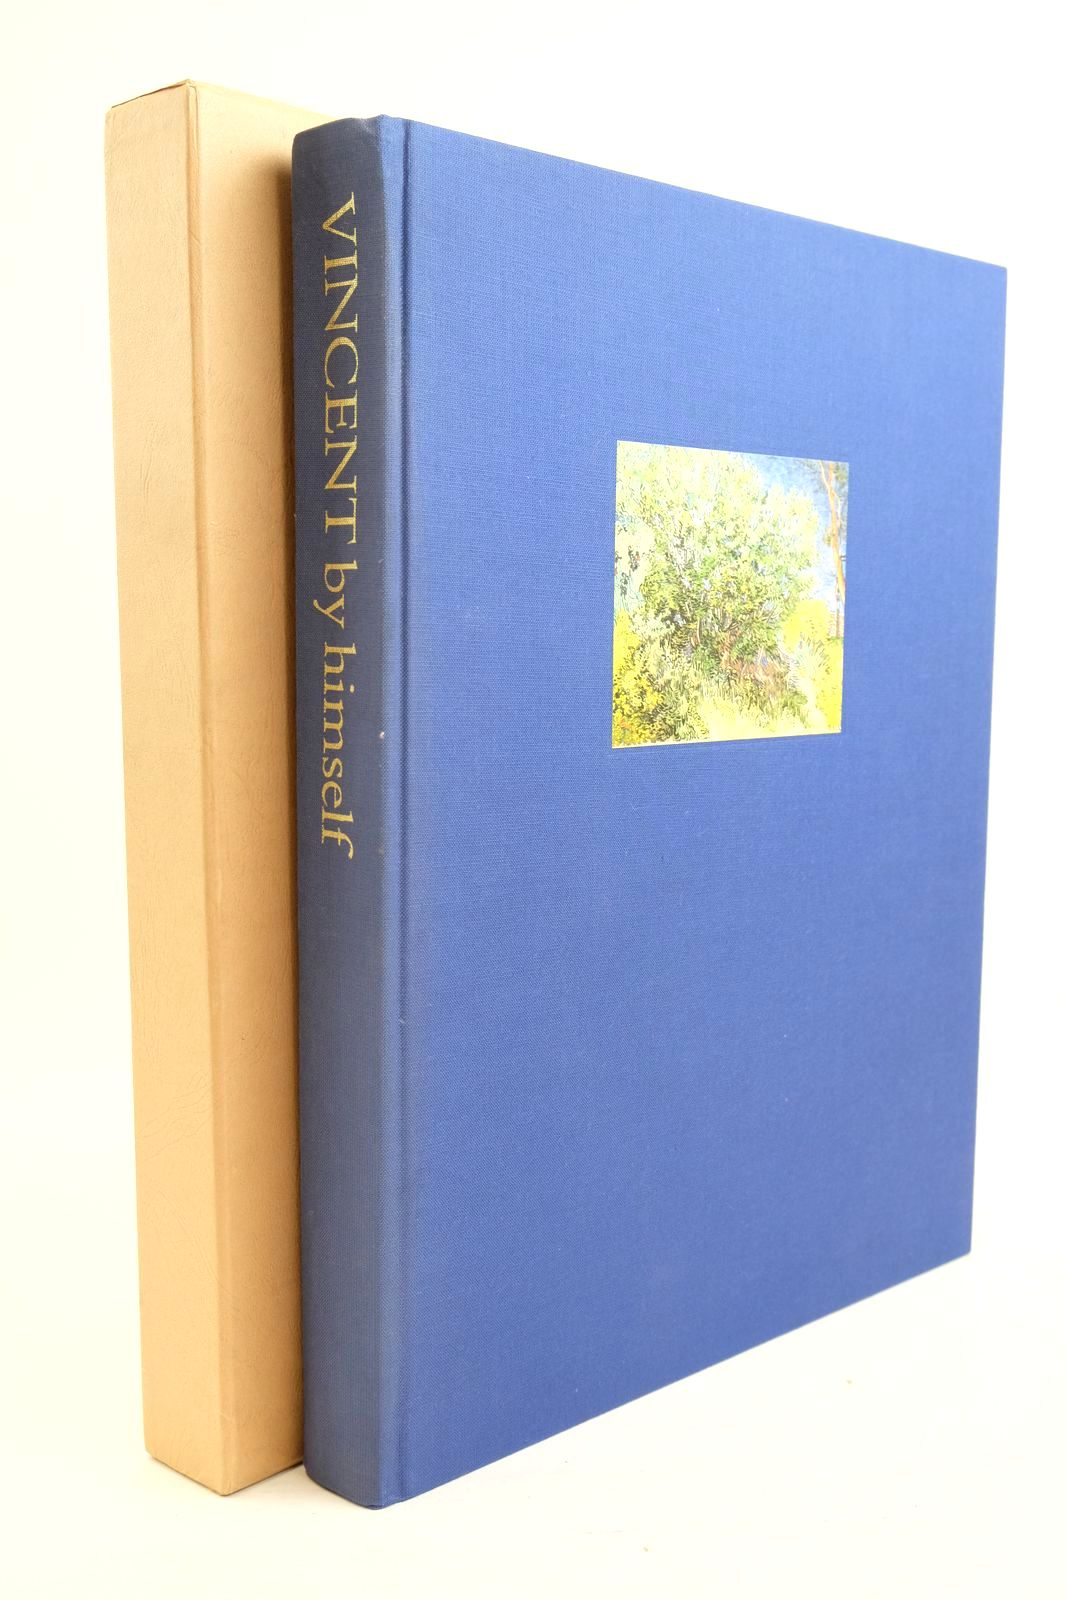 Photo of VINCENT BY HIMSELF written by Van Gogh, Vincent Bernard, Bruce illustrated by Van Gogh, Vincent published by Orbis Publishing (STOCK CODE: 1320948)  for sale by Stella & Rose's Books